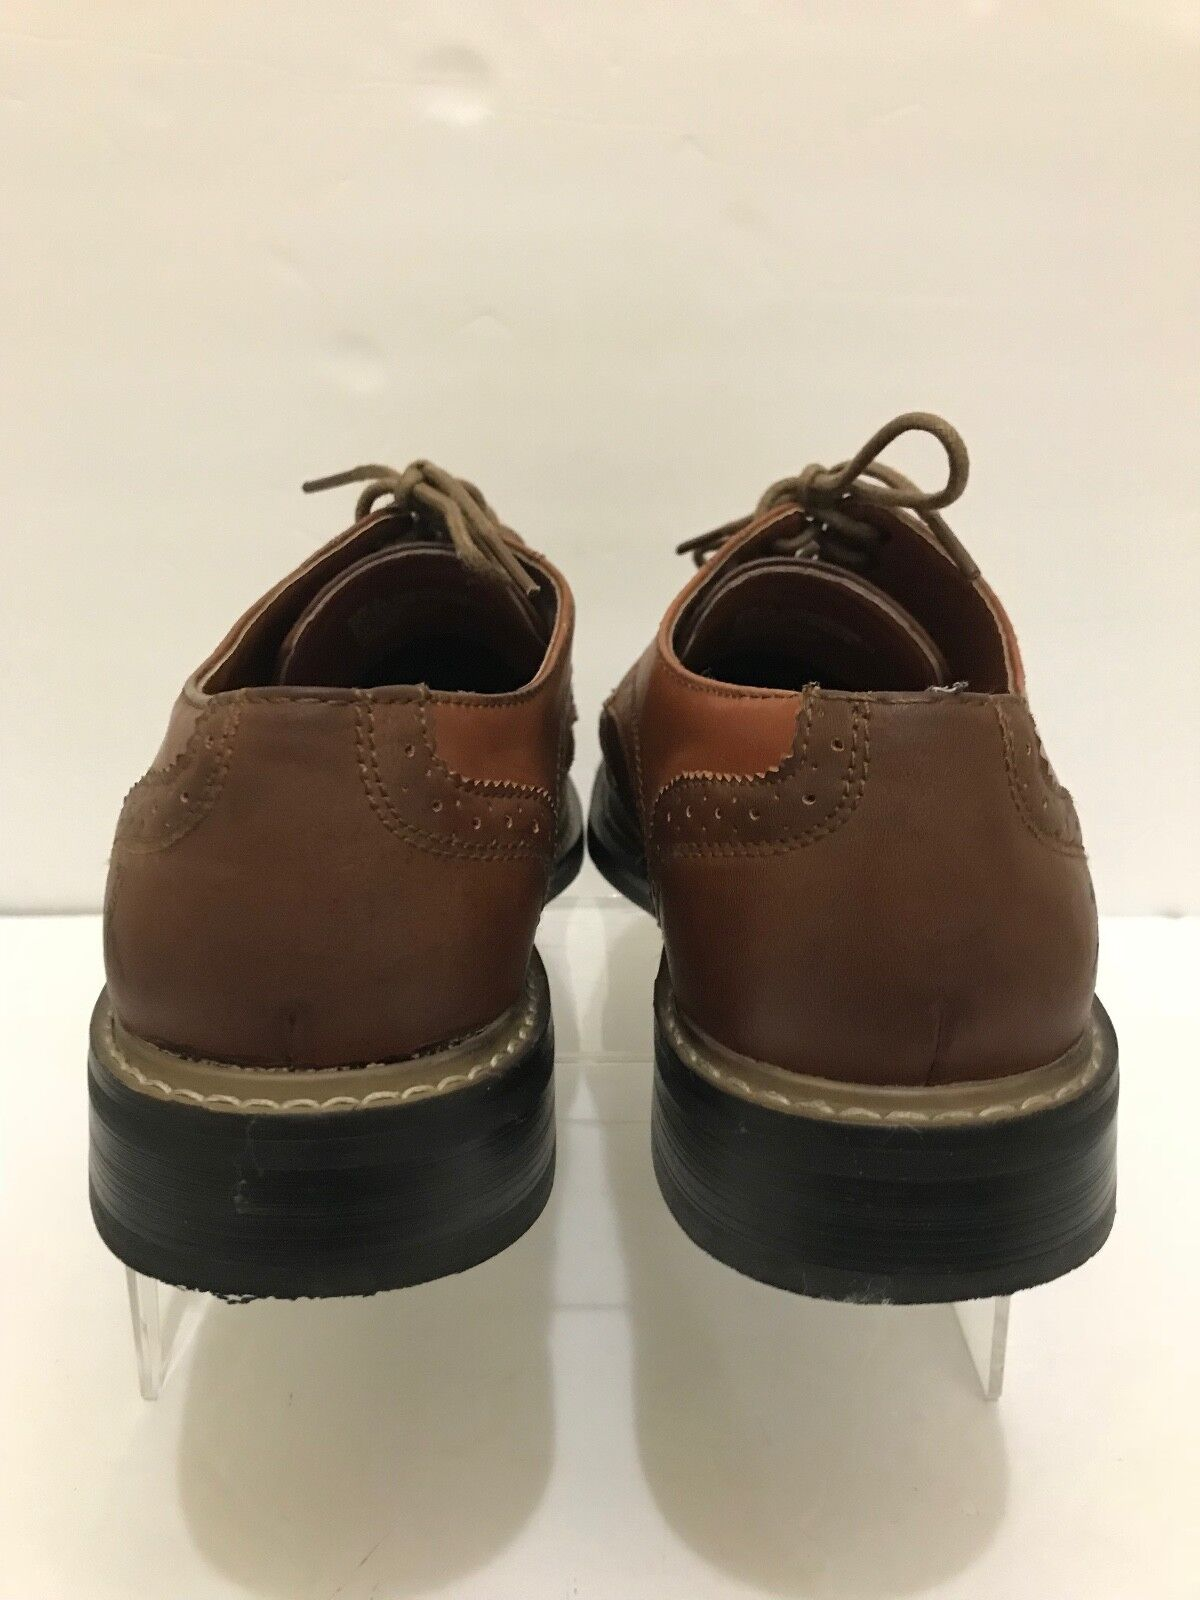 PENGUIN MUNSINGWEAR WELTON WELTON WELTON   LEATHER LACE UP LONG WINGTIP OXFORD schuhe SZ 8 M 7acc0f